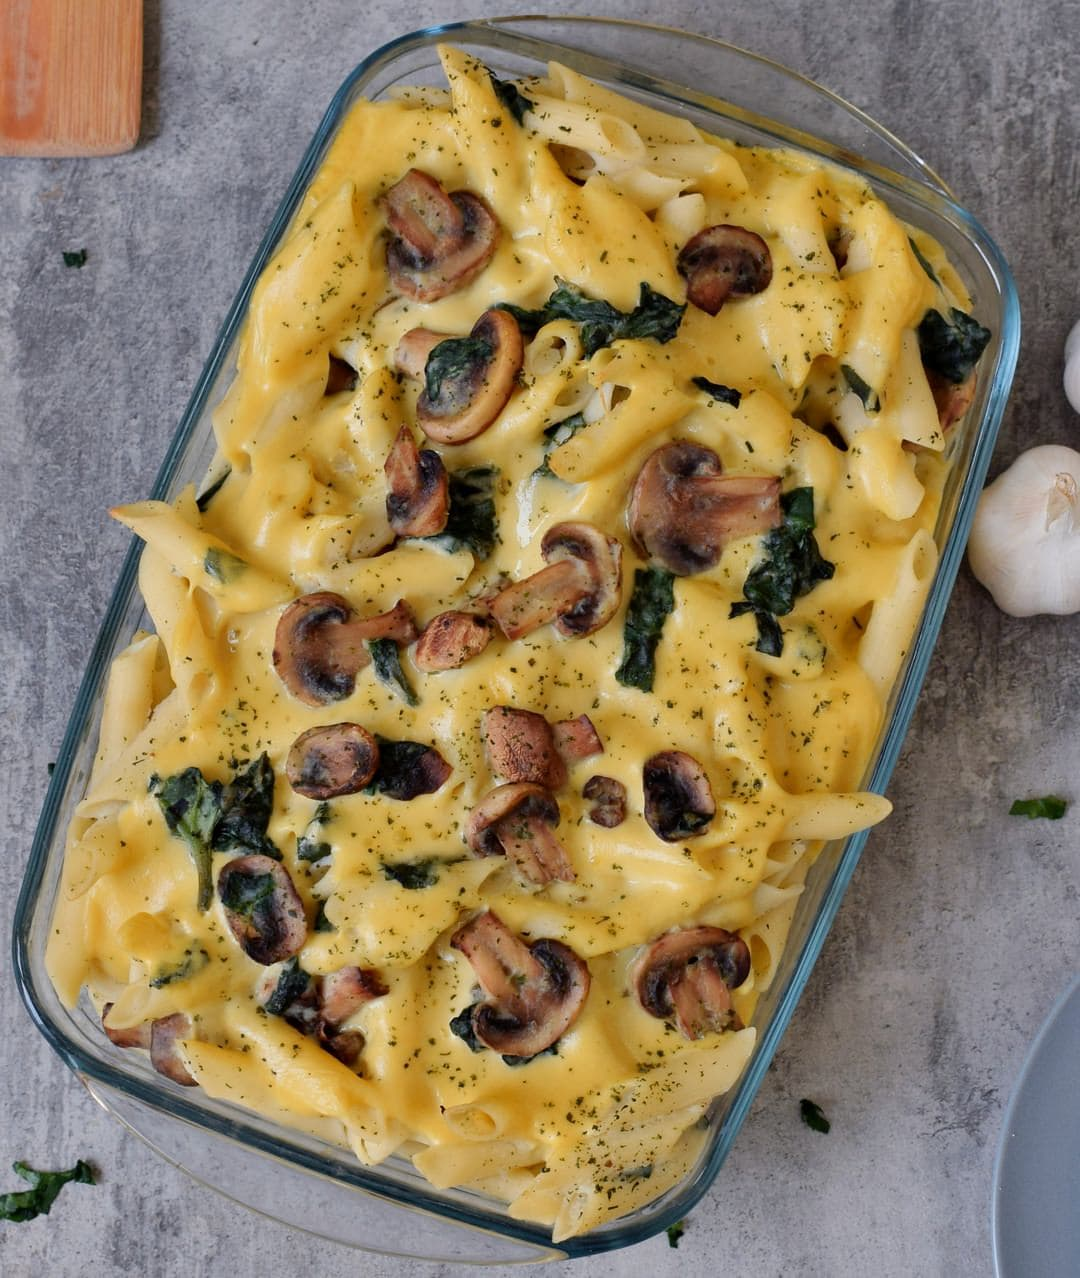 Vegan pasta bake recipe with cauliflower, mushrooms and spinach. This plant-based dinner or lunch is gluten-free, healthy, low-fat, and easy to make. Recipe for vegan cheese sauce included.